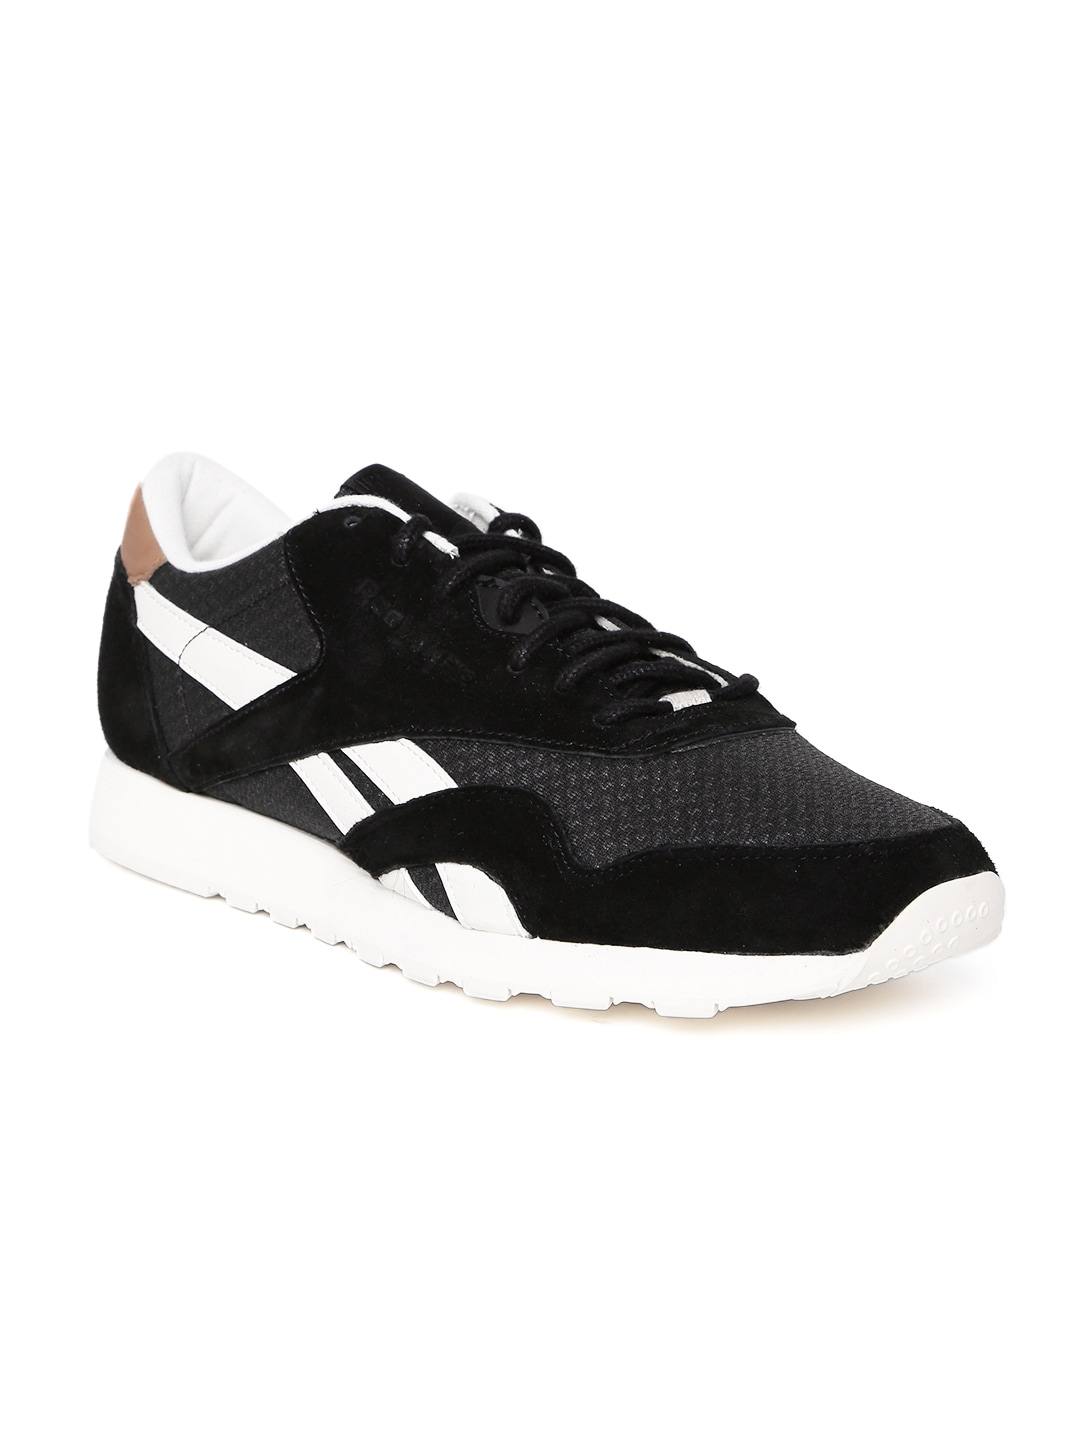 7dc357f4707 Reebok Classic Shoes - Buy Reebok Classic Shoes online in India